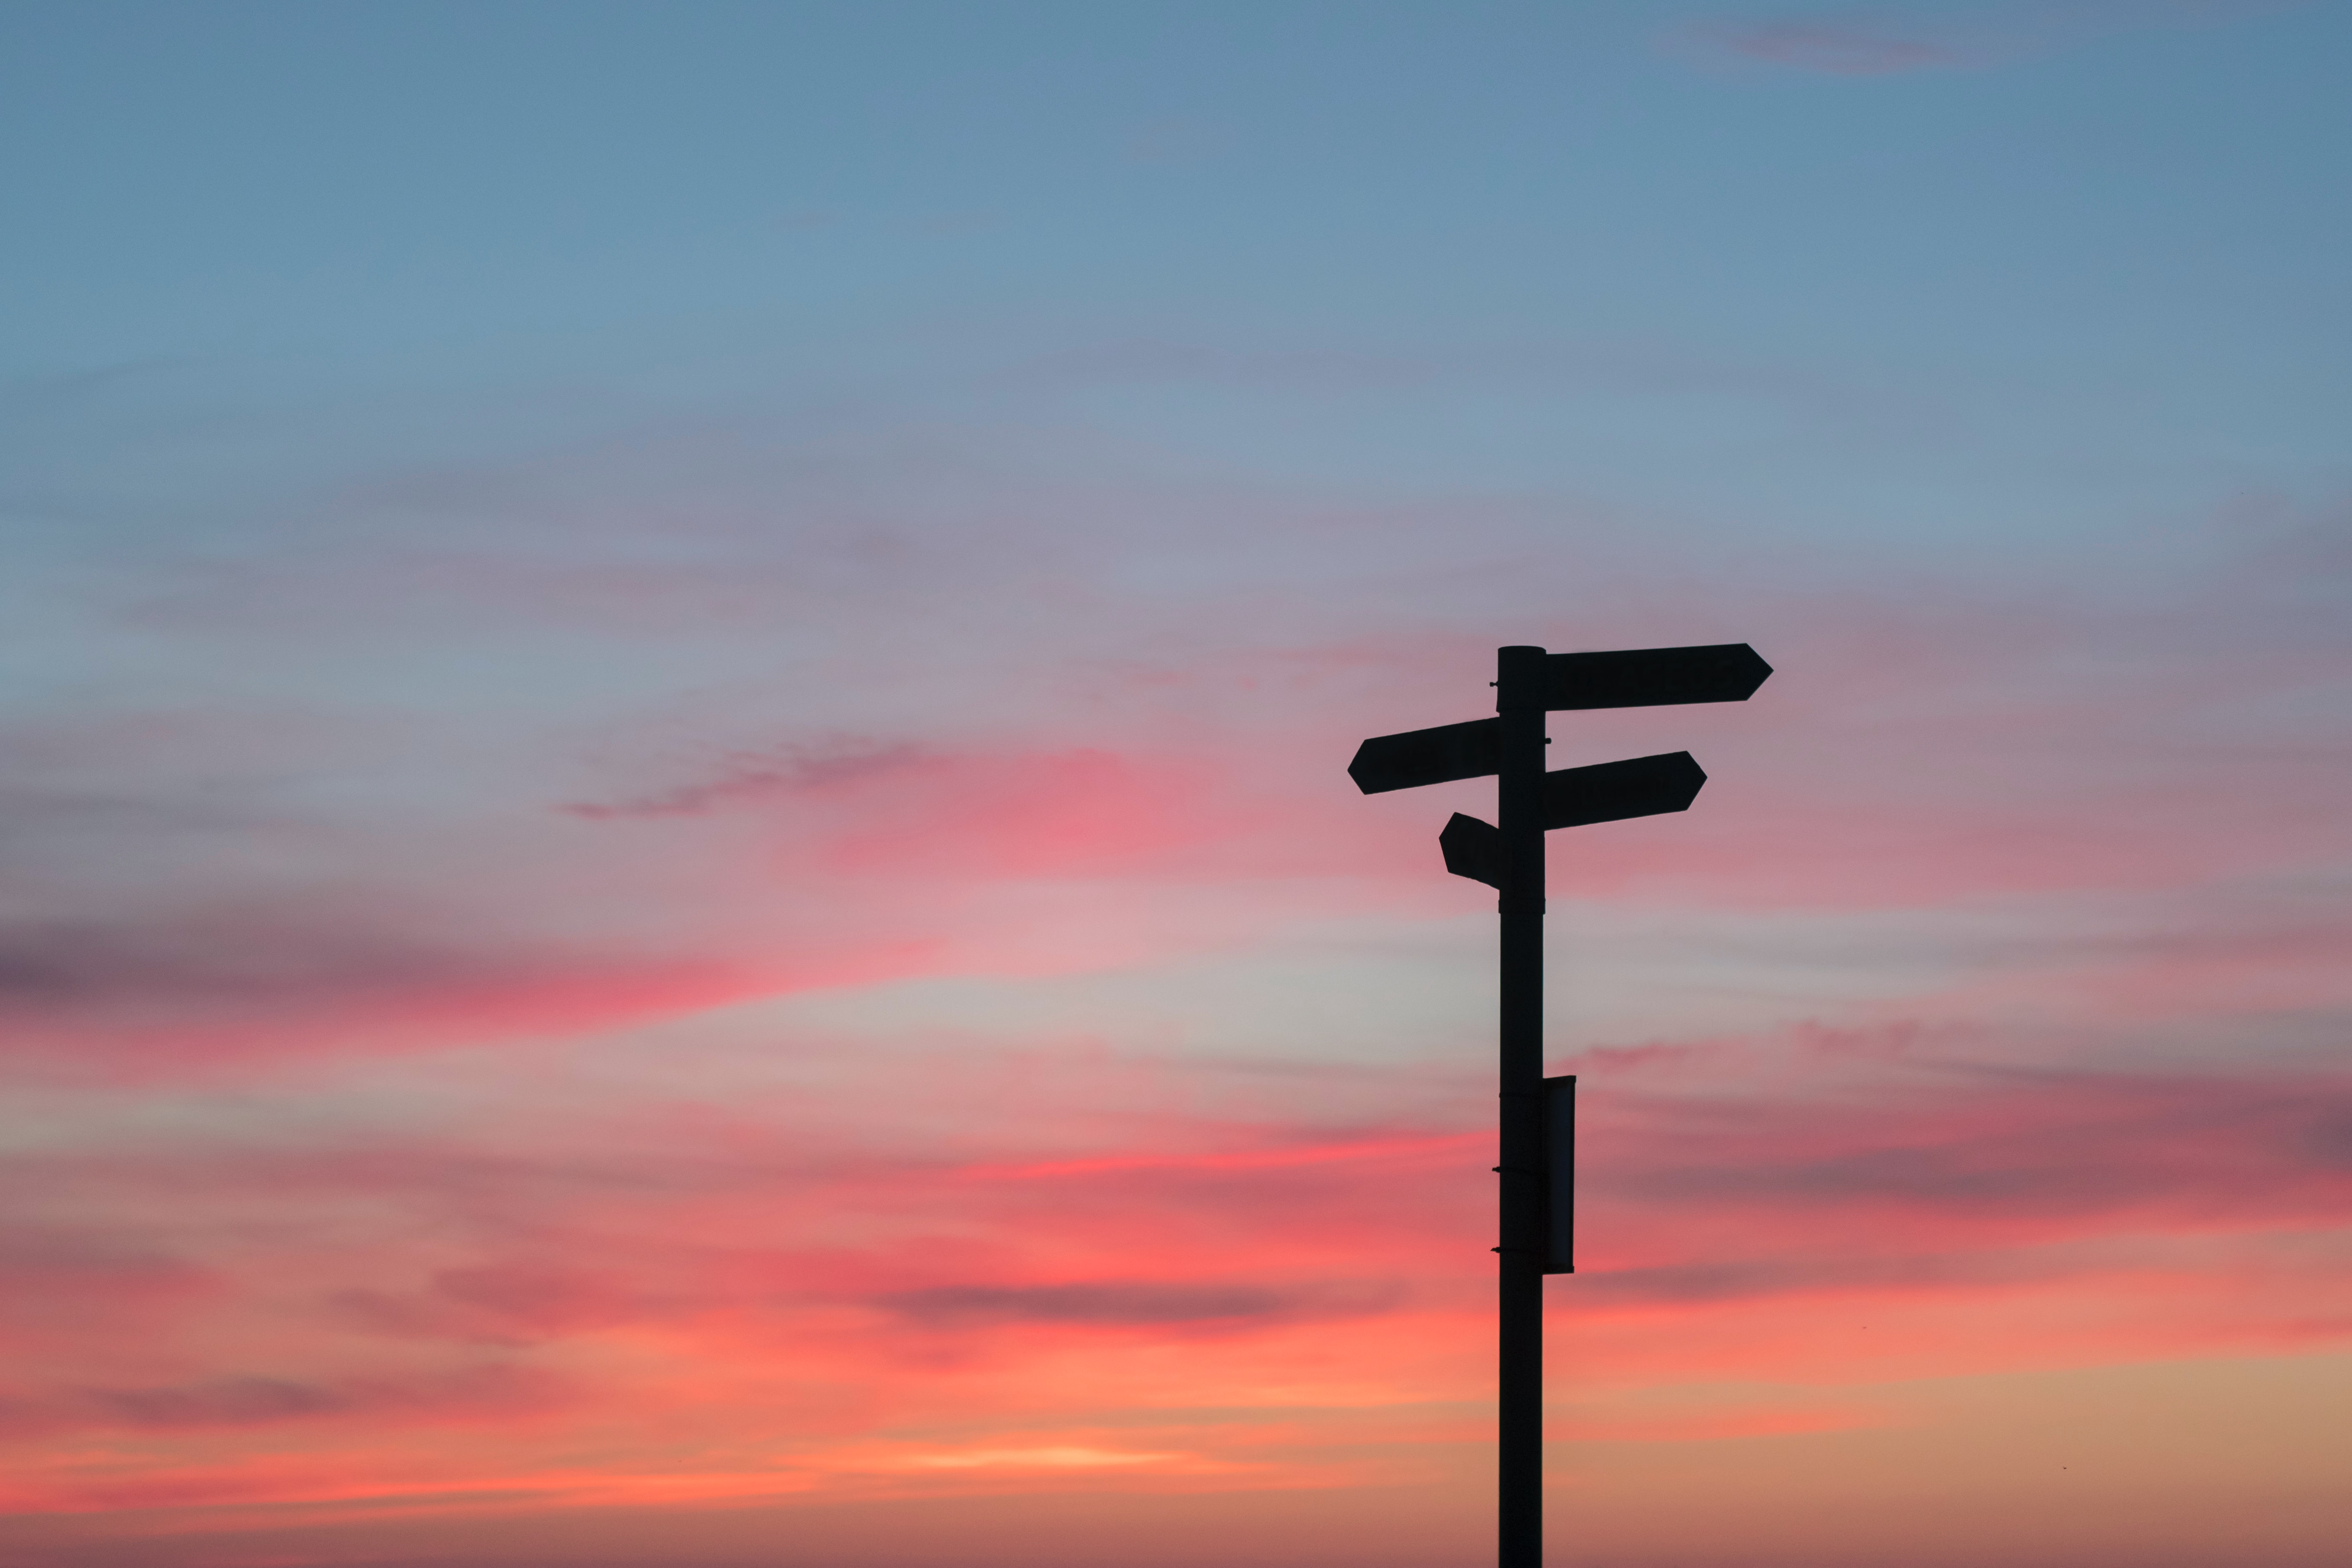 A signpost shown against the sky